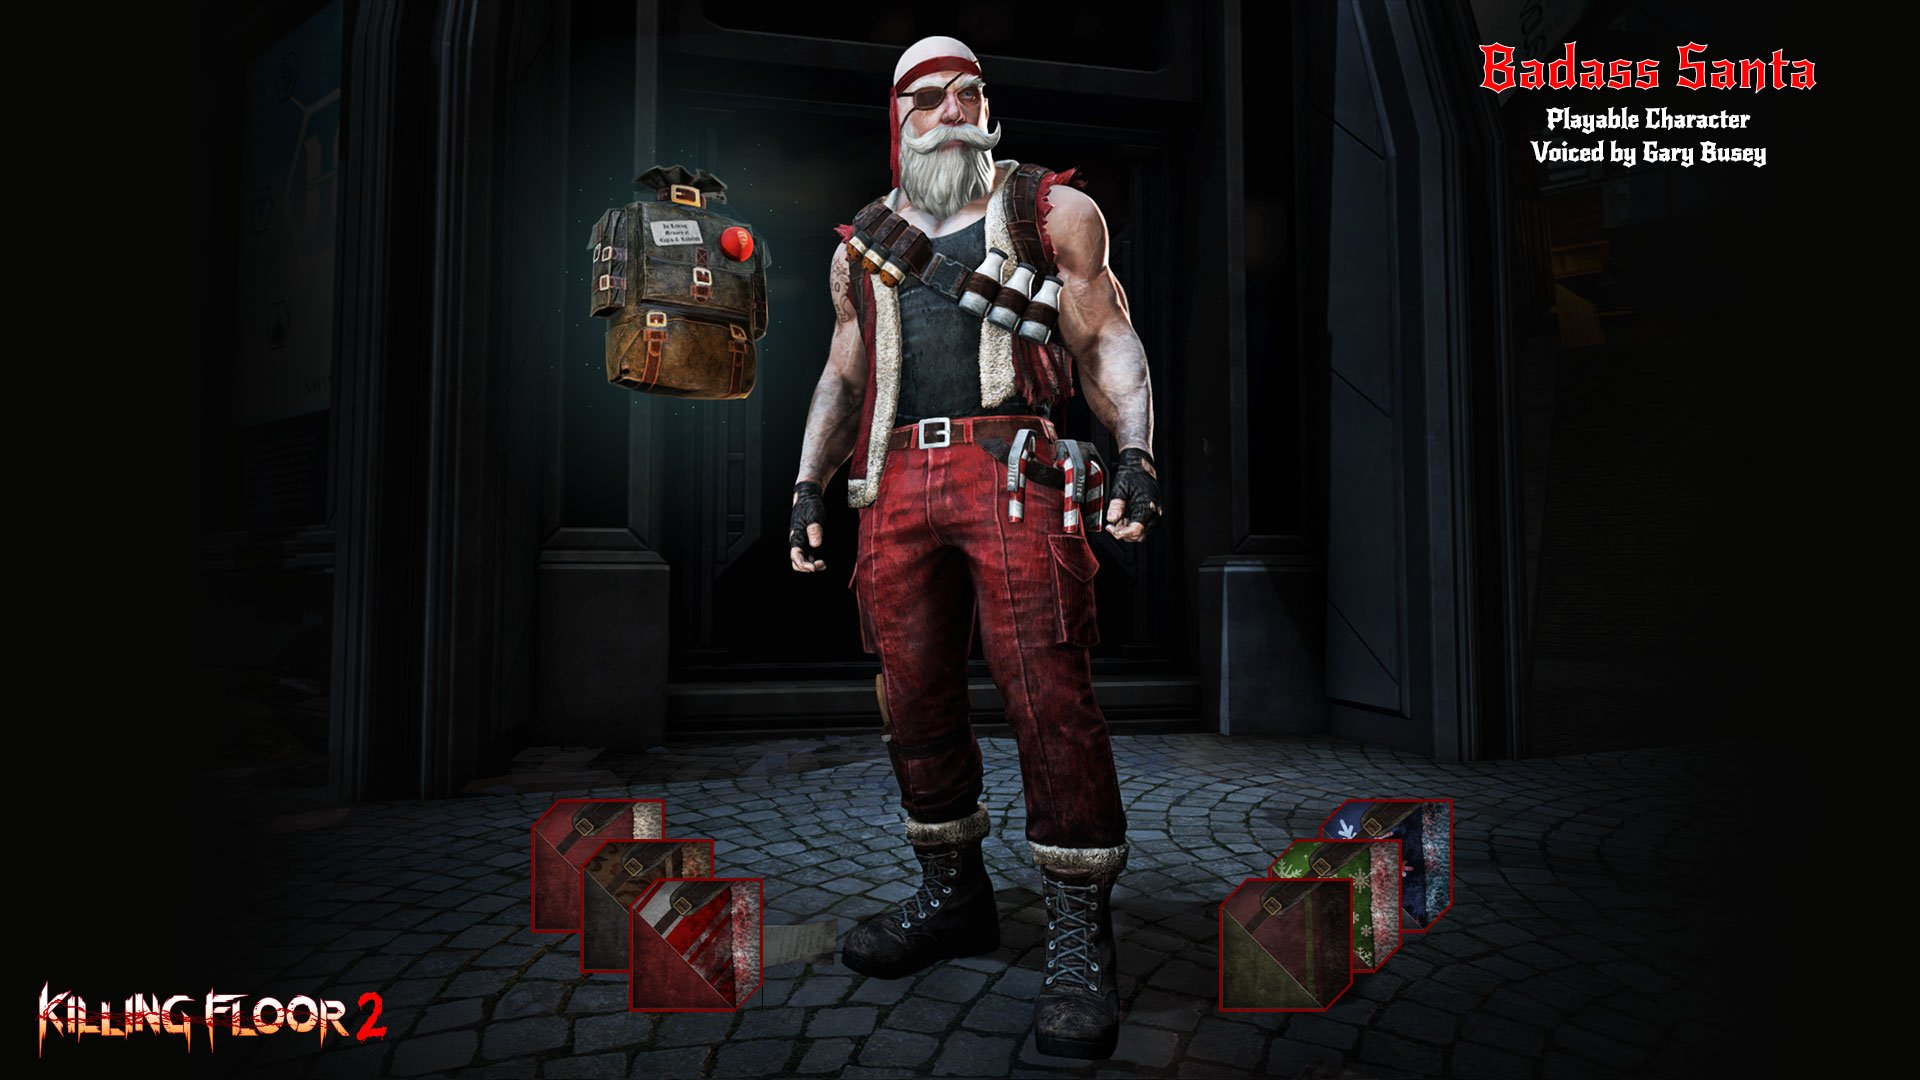 Killing Floor 2 celebrates \'Twisted Christmas\' with Gary Busey in ...